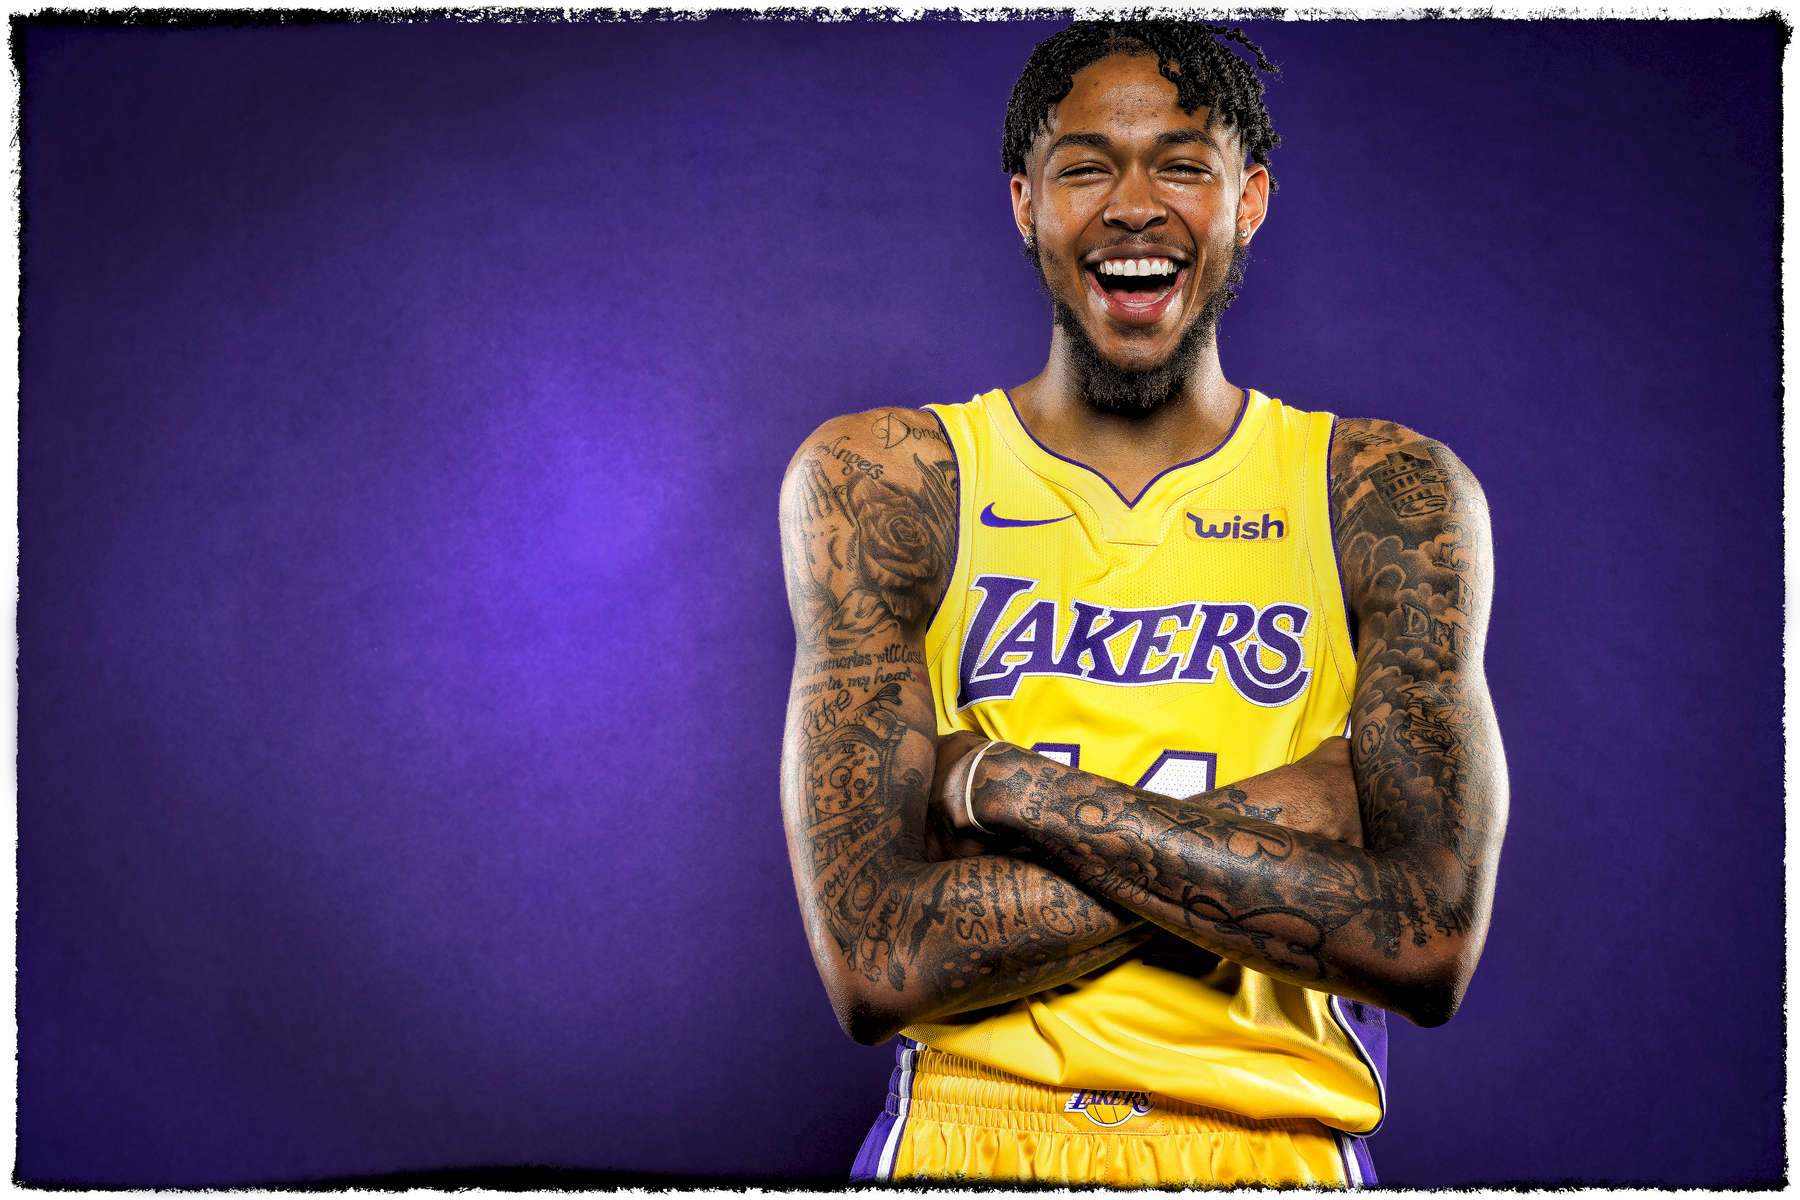 Photographed for the NBA, ©NBAE.